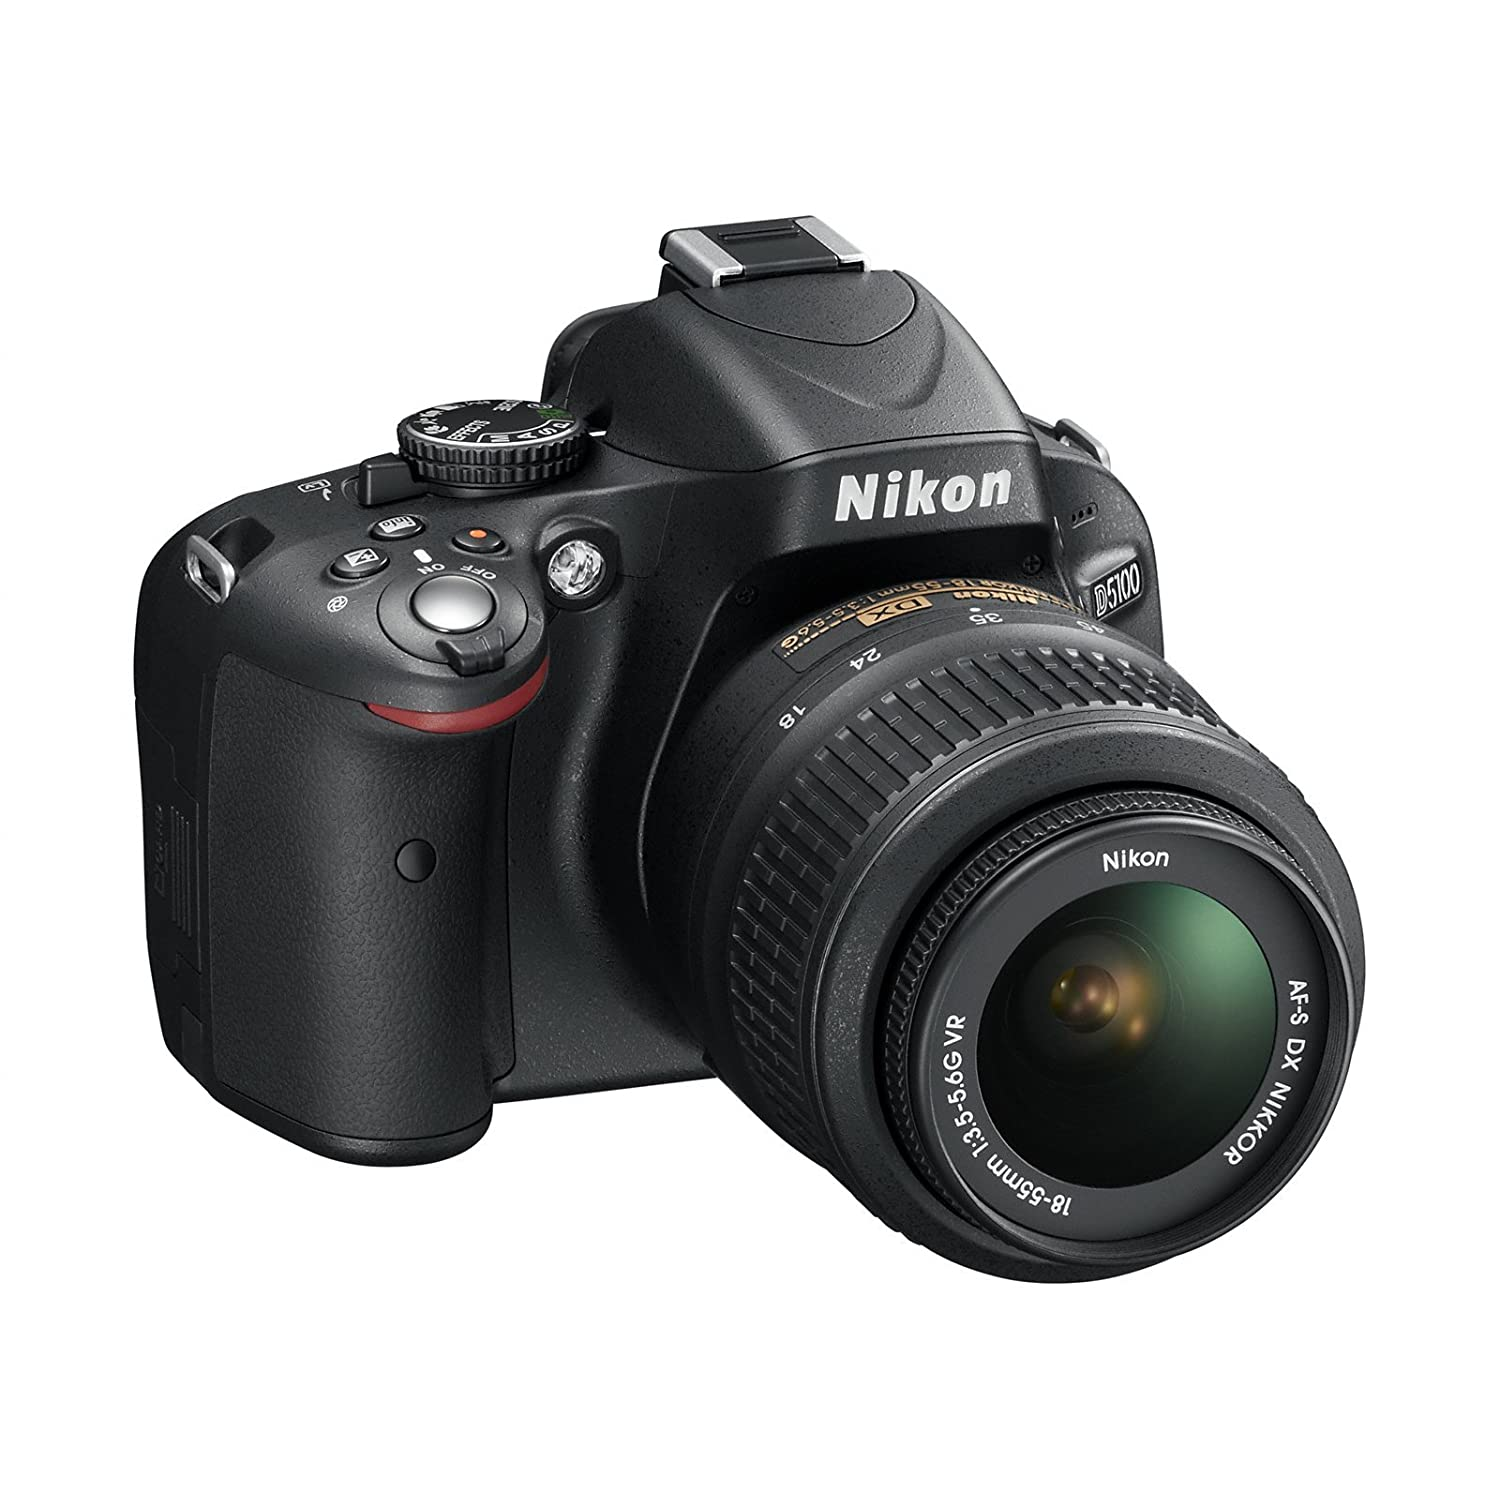 Affordable DSLRs today offer unprecedented quality of images and wide flexibility in functions and control.